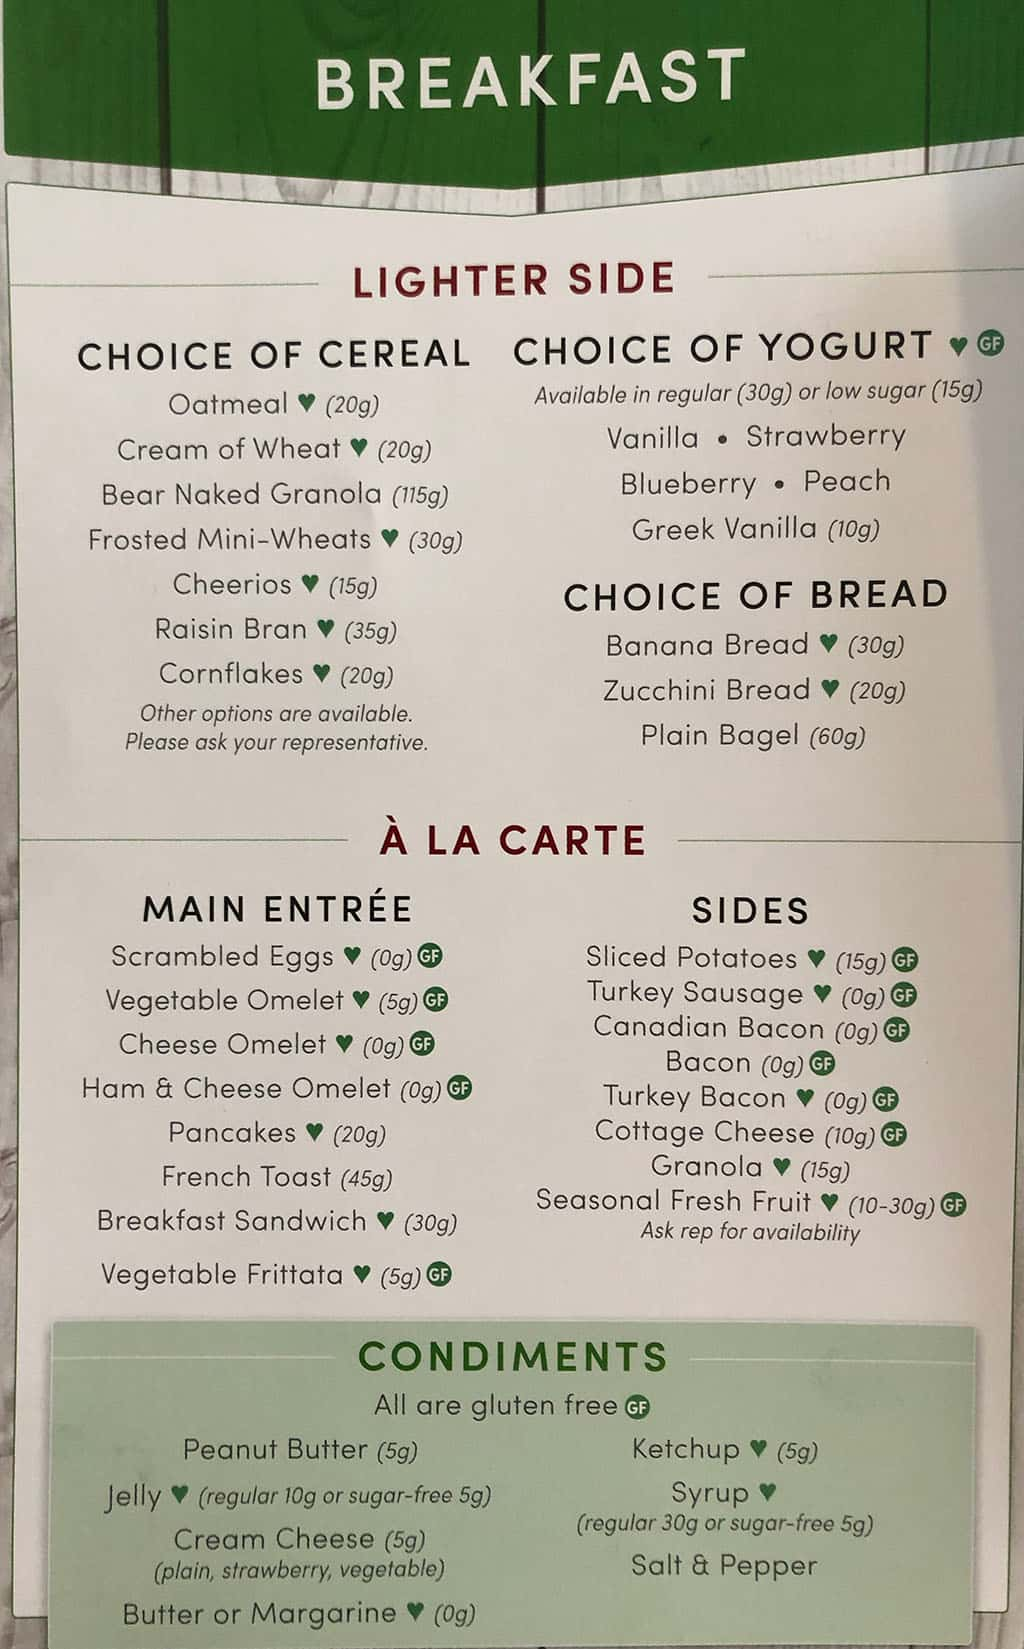 University Of Utah Hospital In Patient menu - breakfast